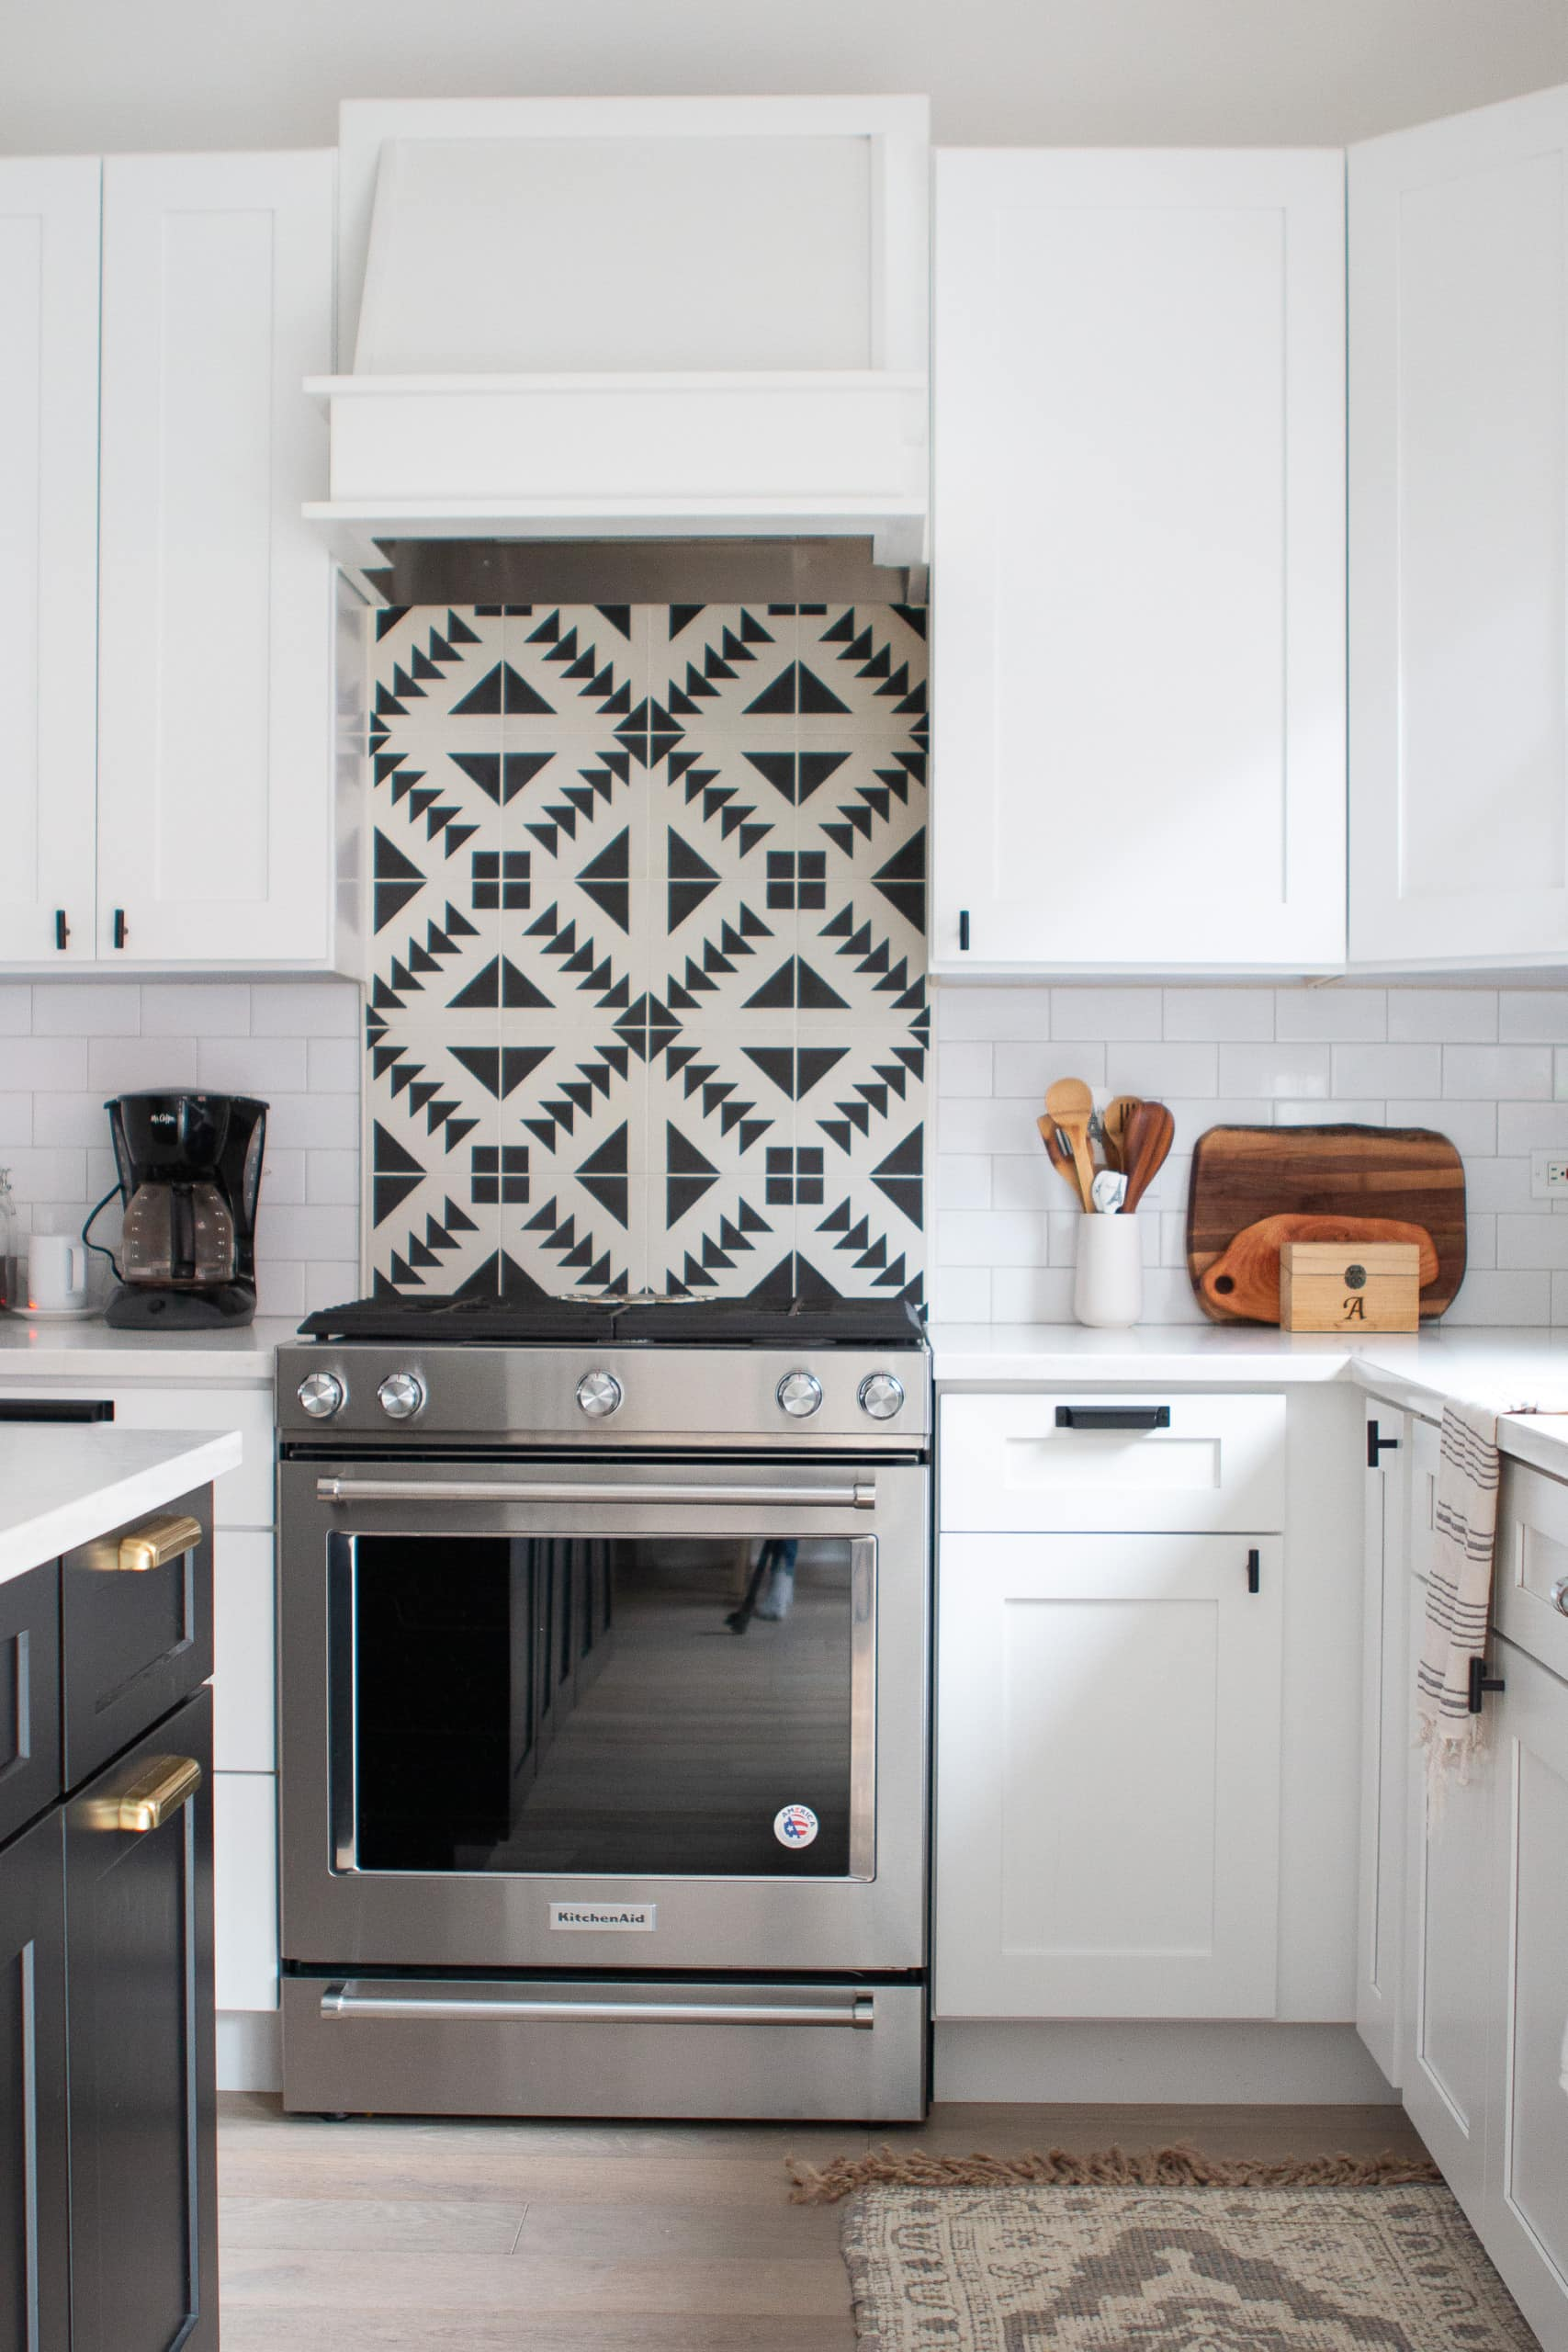 Patterned backsplash in kitchen